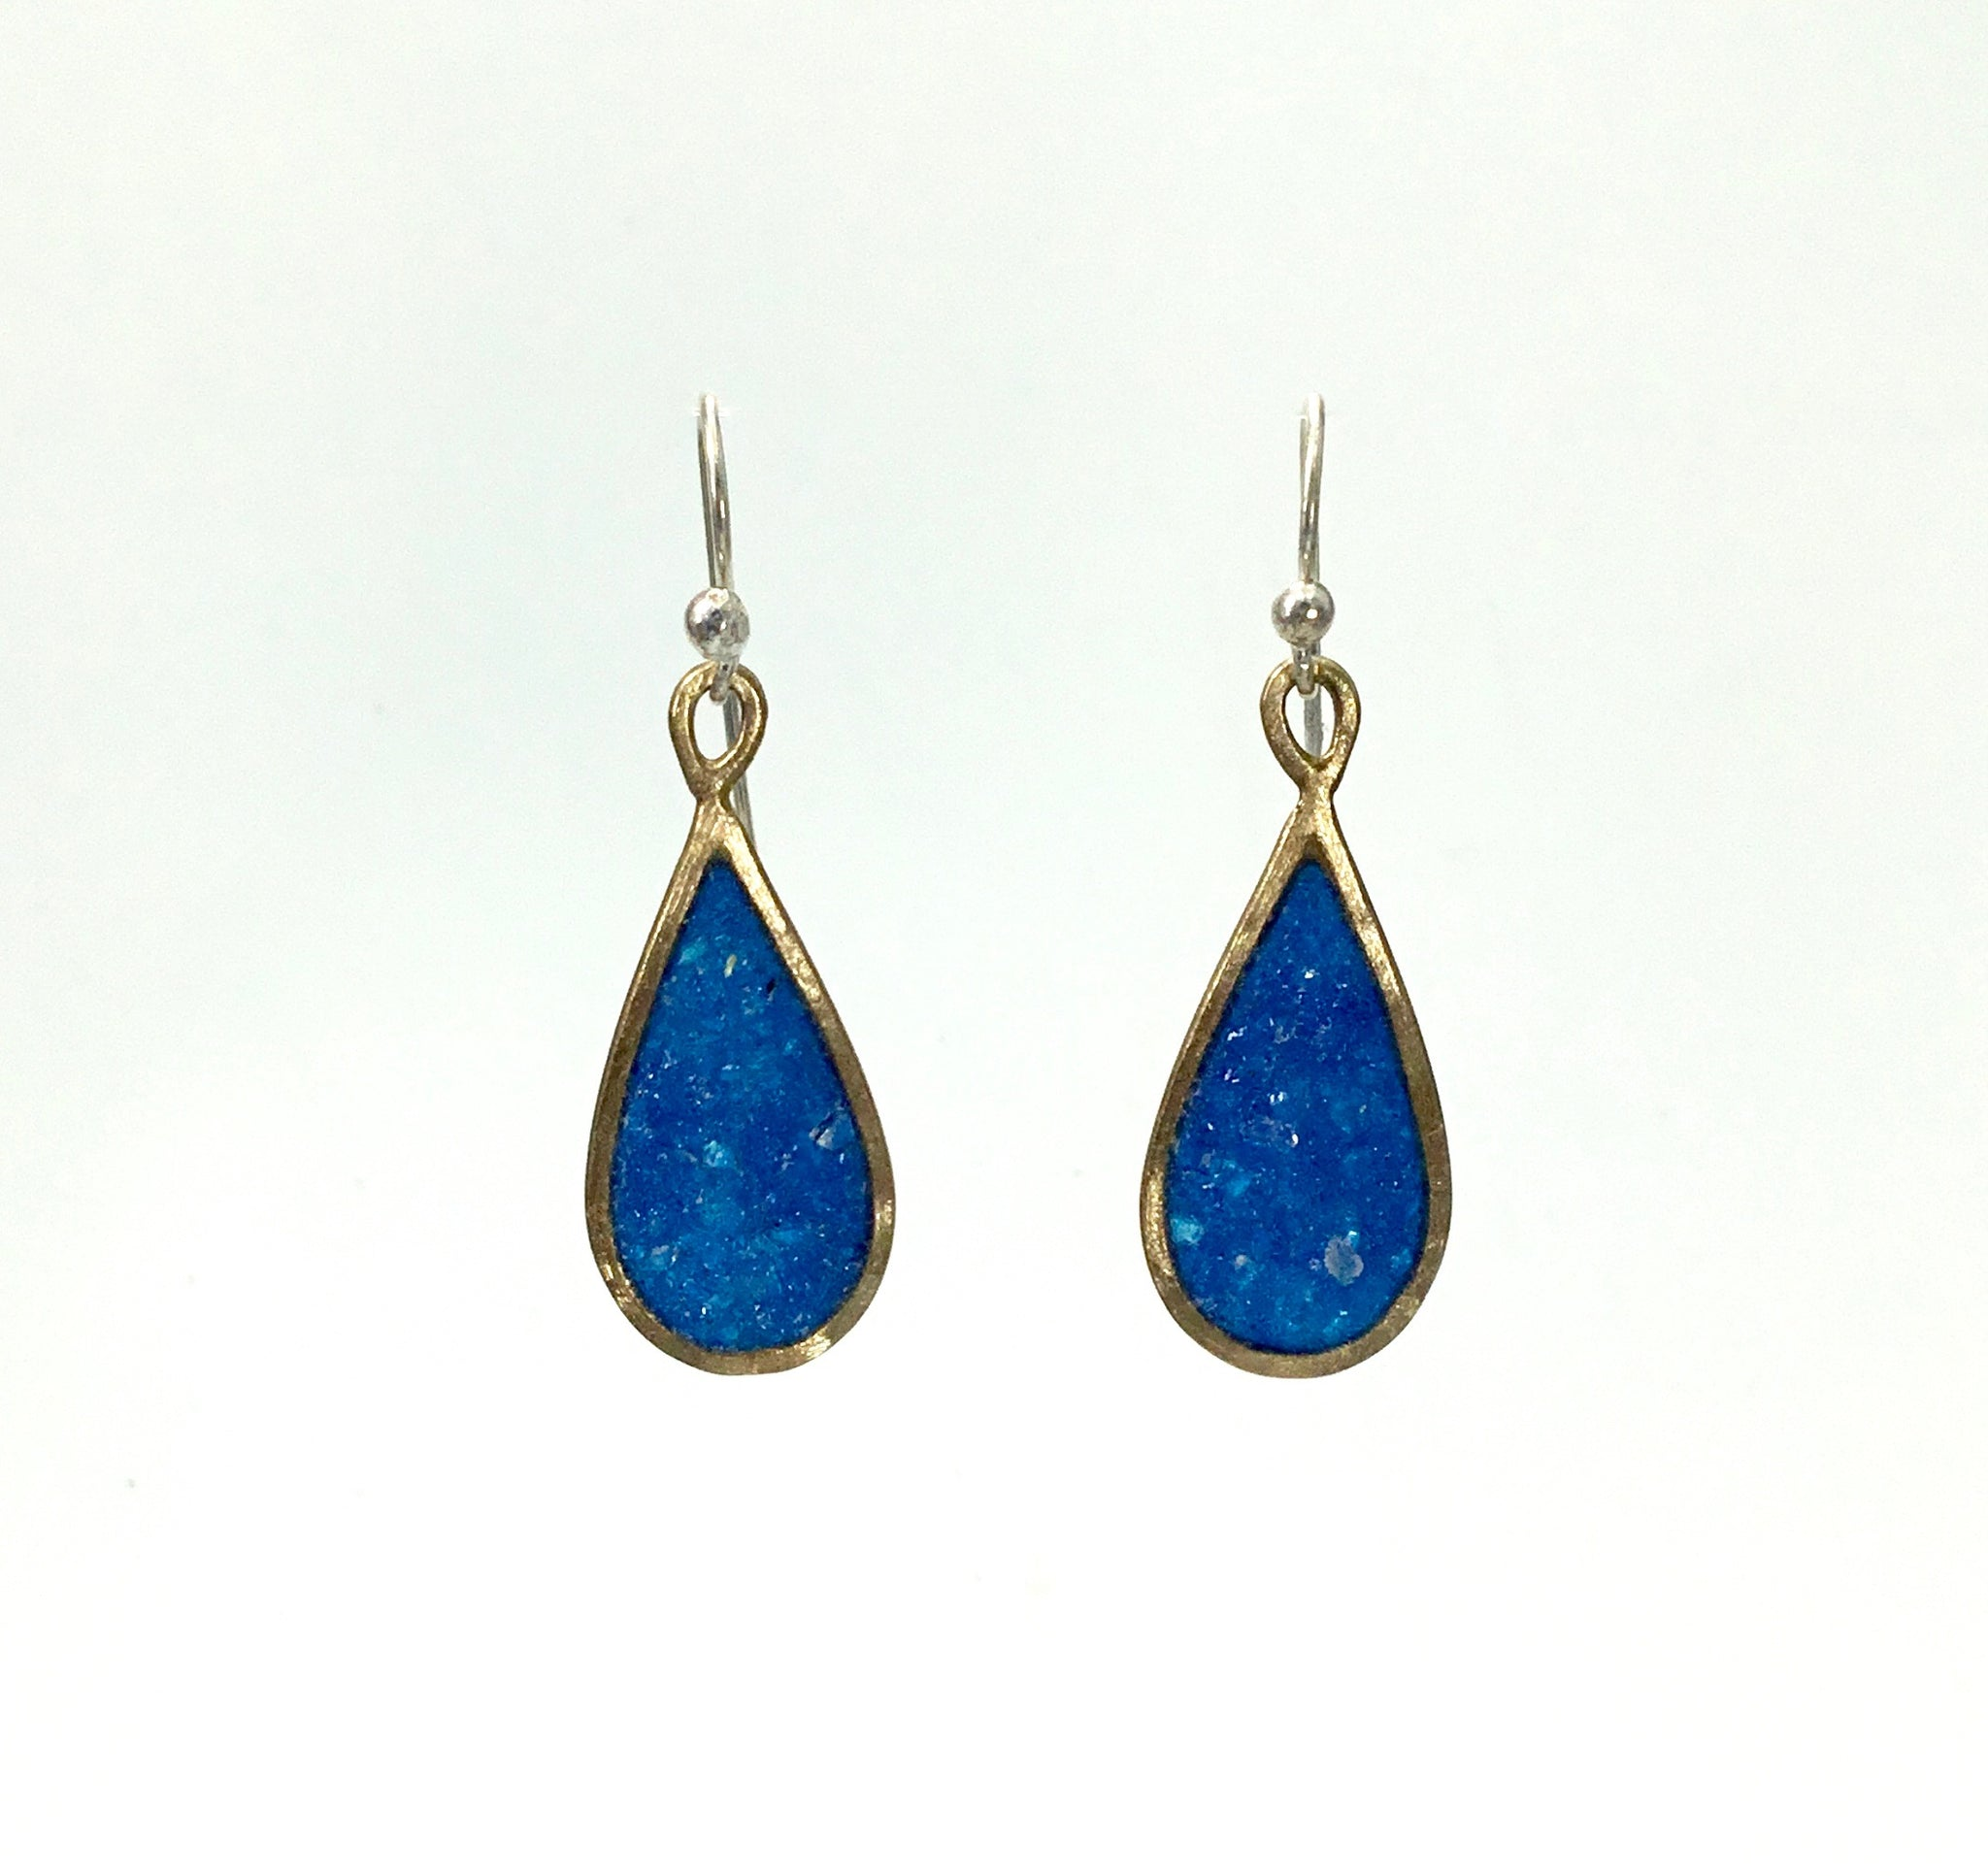 David Urso Blue Infinity Earrings